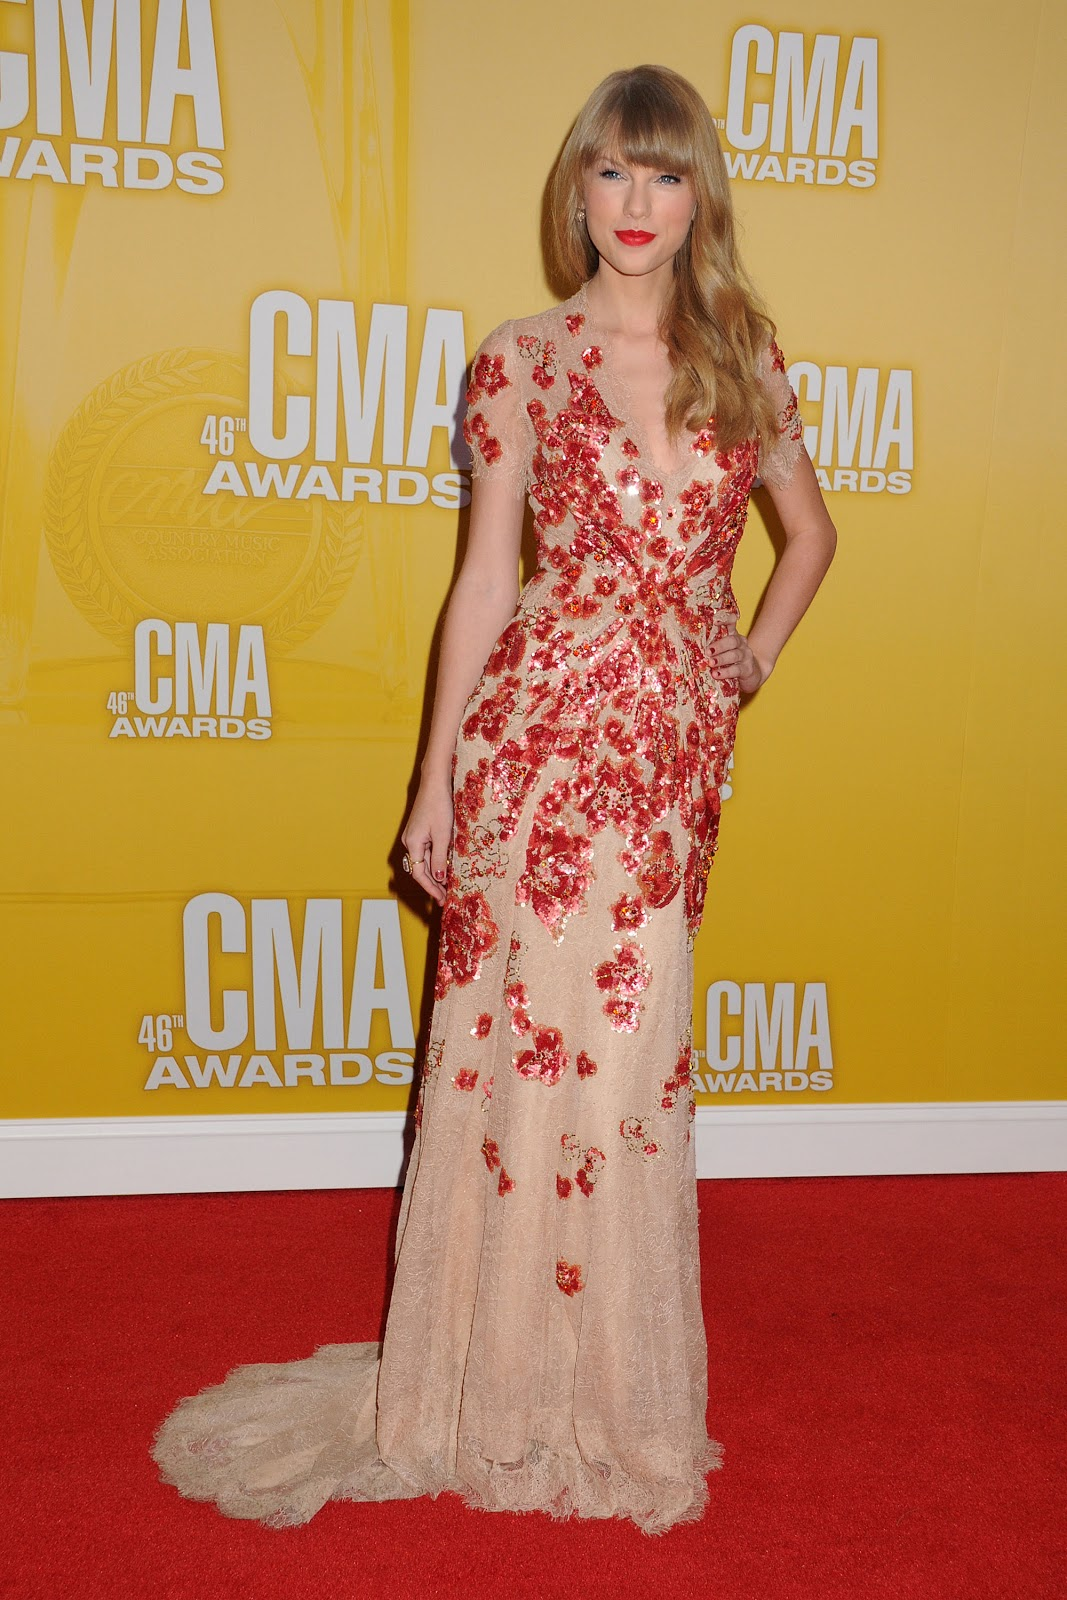 http://1.bp.blogspot.com/-8nkhWo_w-ns/UJQtbLi72-I/AAAAAAAAX5M/Ze1PTwiAKsg/s1600/Taylor+Swift+attends+the+46th+Annual+CMA+Awards+in+Nashville+on+November+1,+2012+-05.jpg